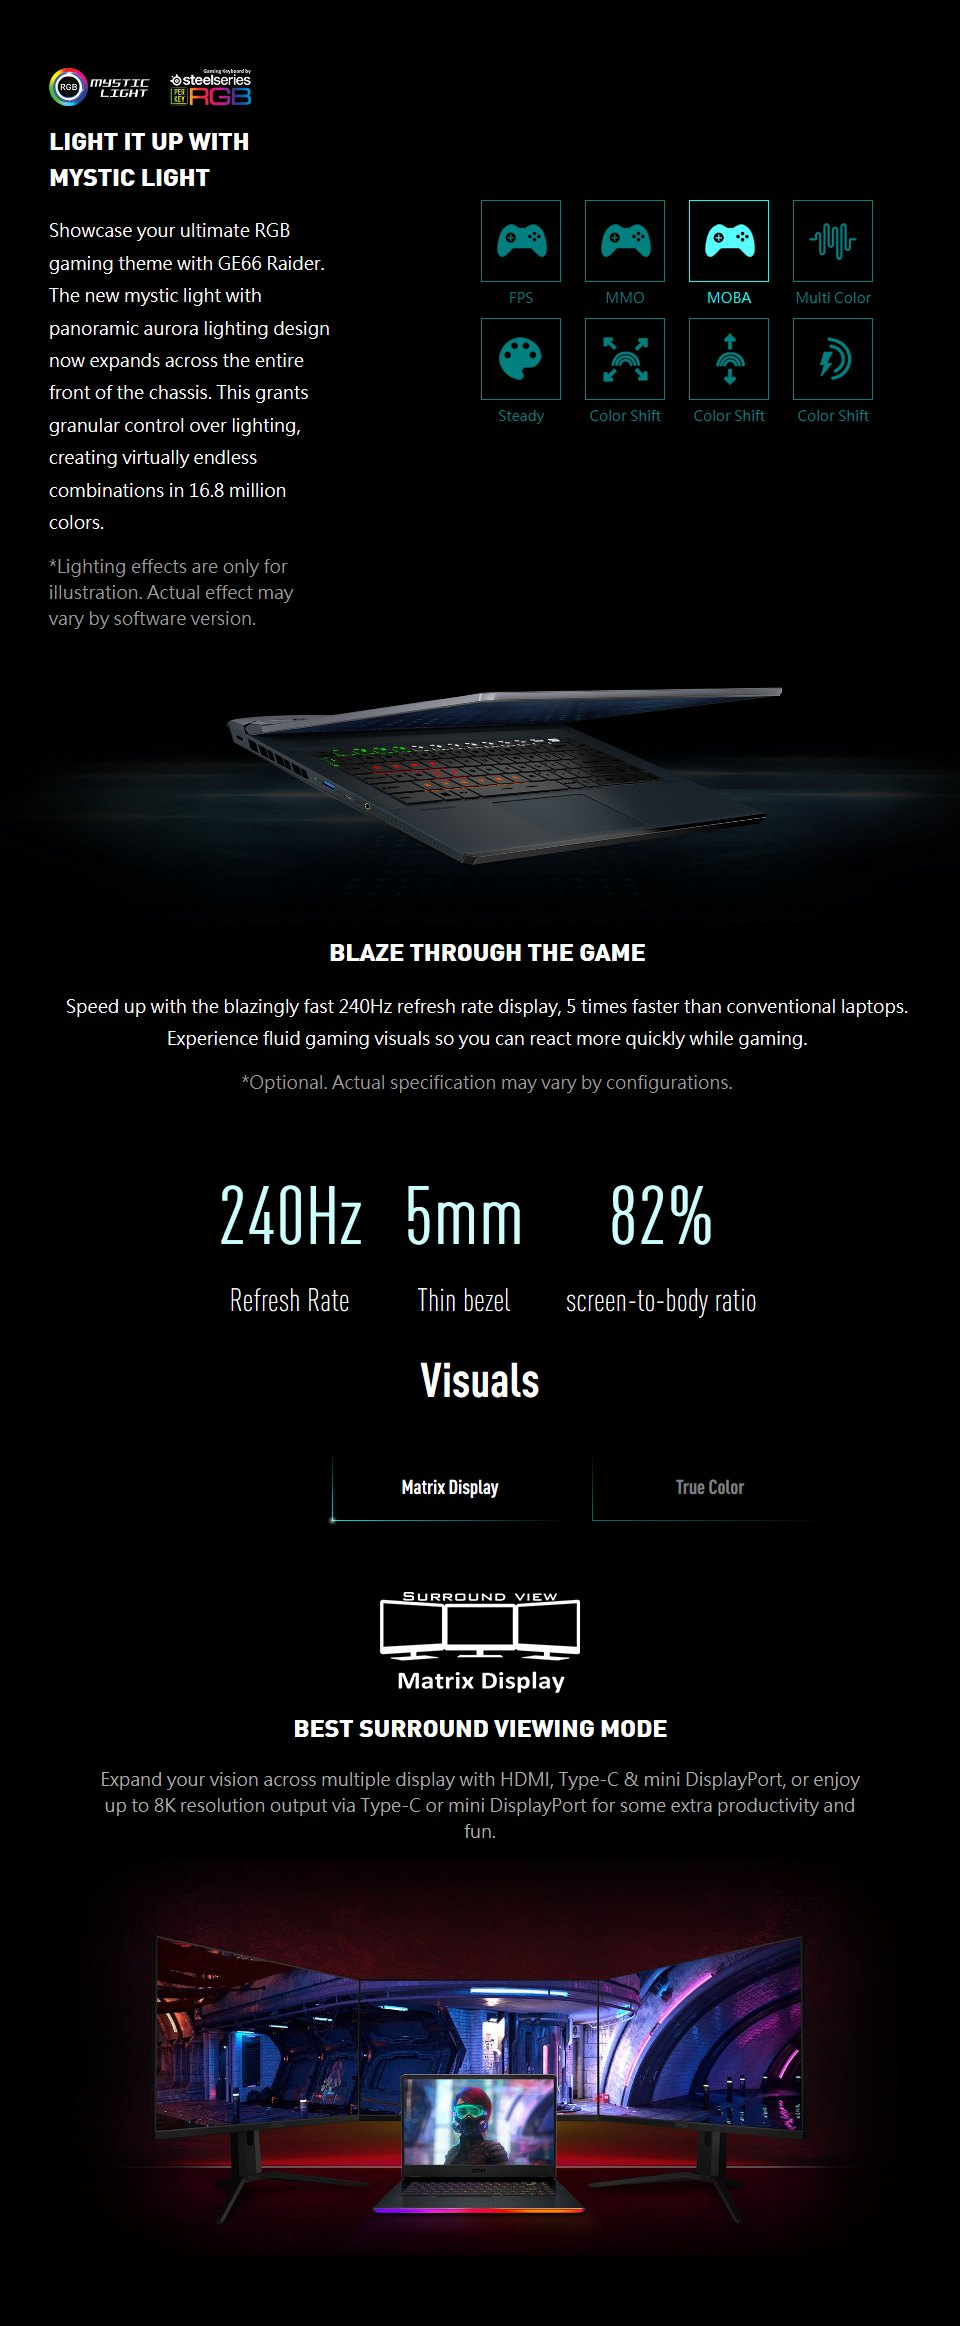 MSI GE66 10th Gen Core i7 RTX 2070 15.6in 240Hz Gaming Notebook features 2